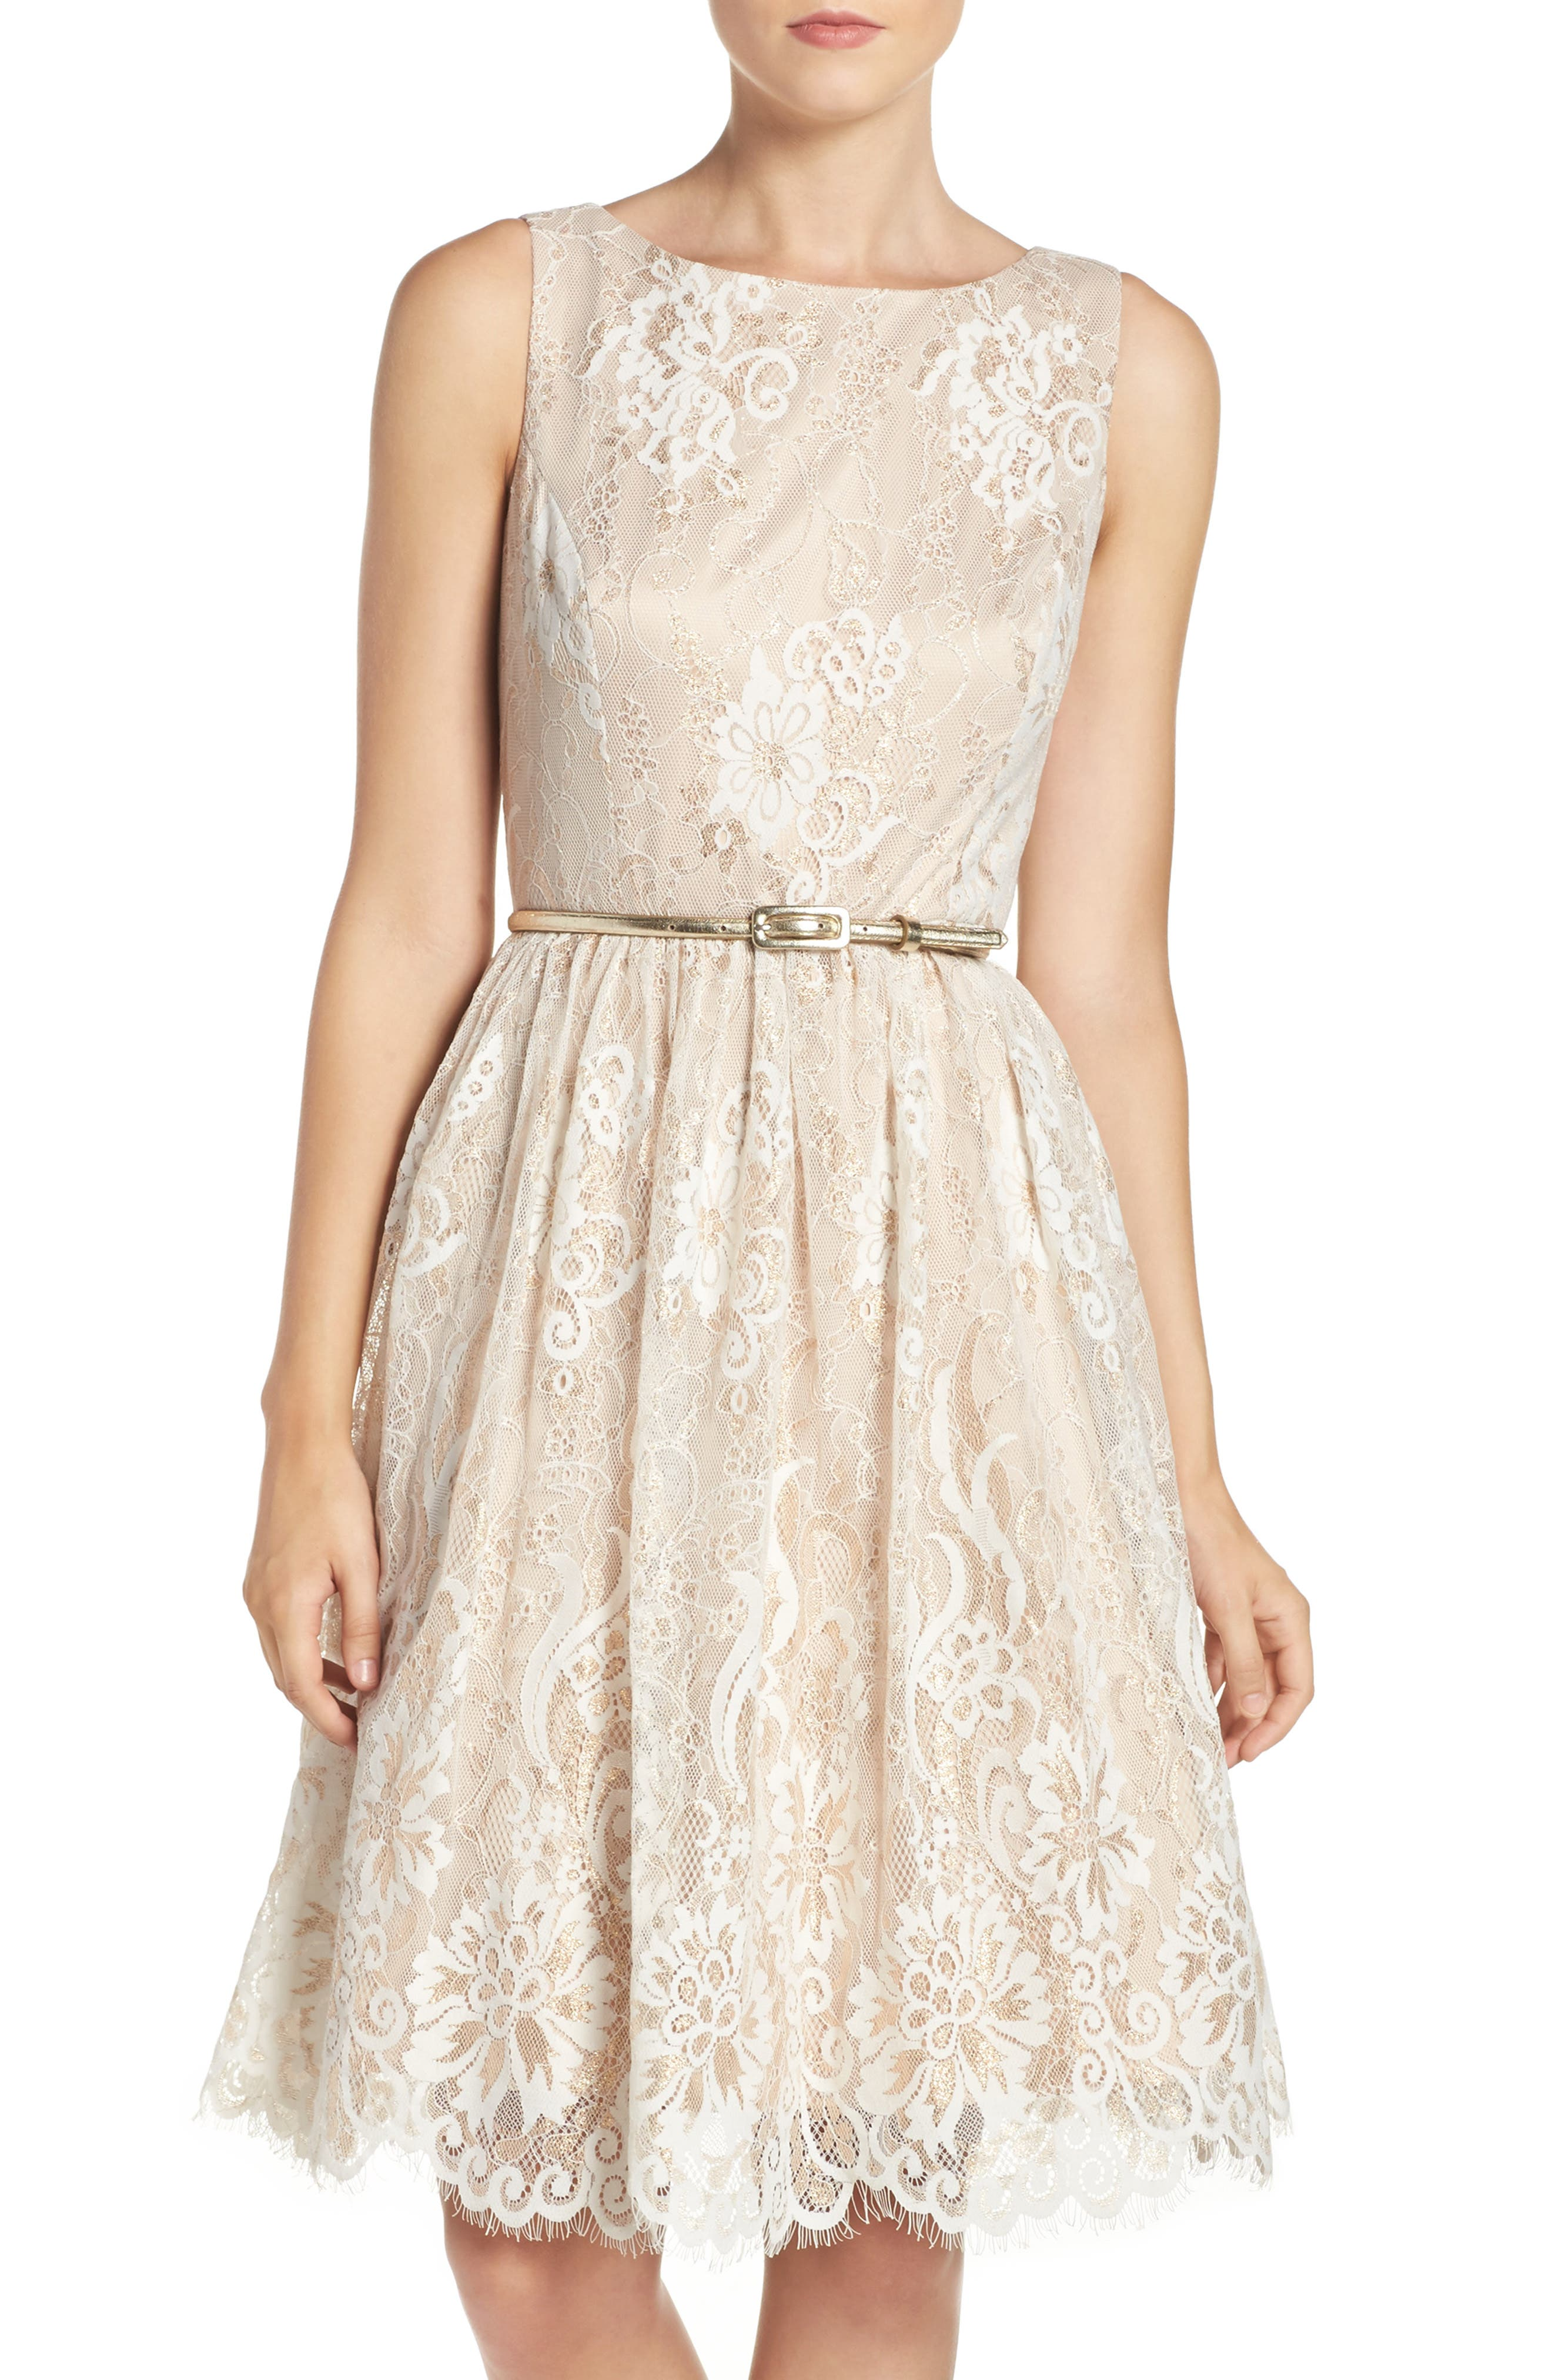 Alternate Image 1 Selected - Eliza J Belted Lace Fit & Flare Dress